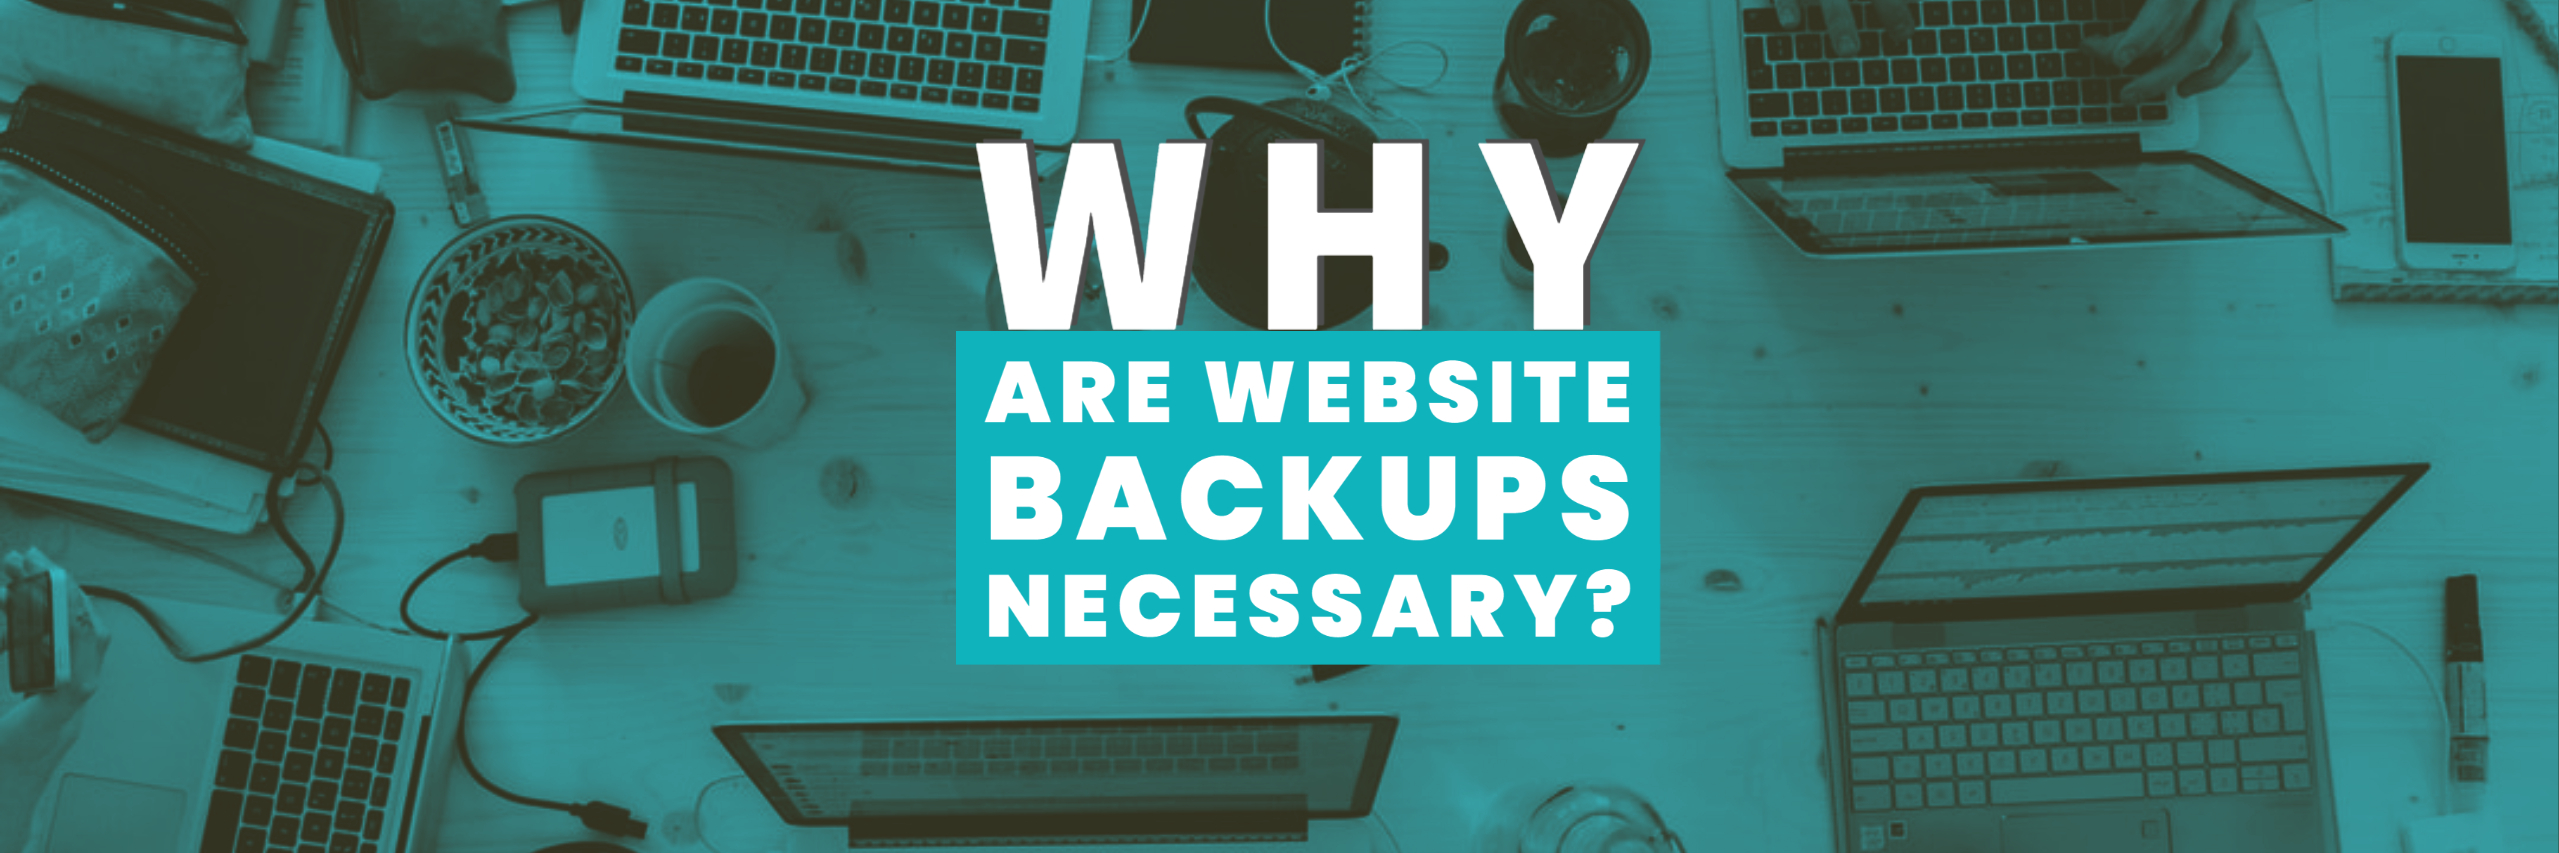 Why Are Website Backups Necessary?